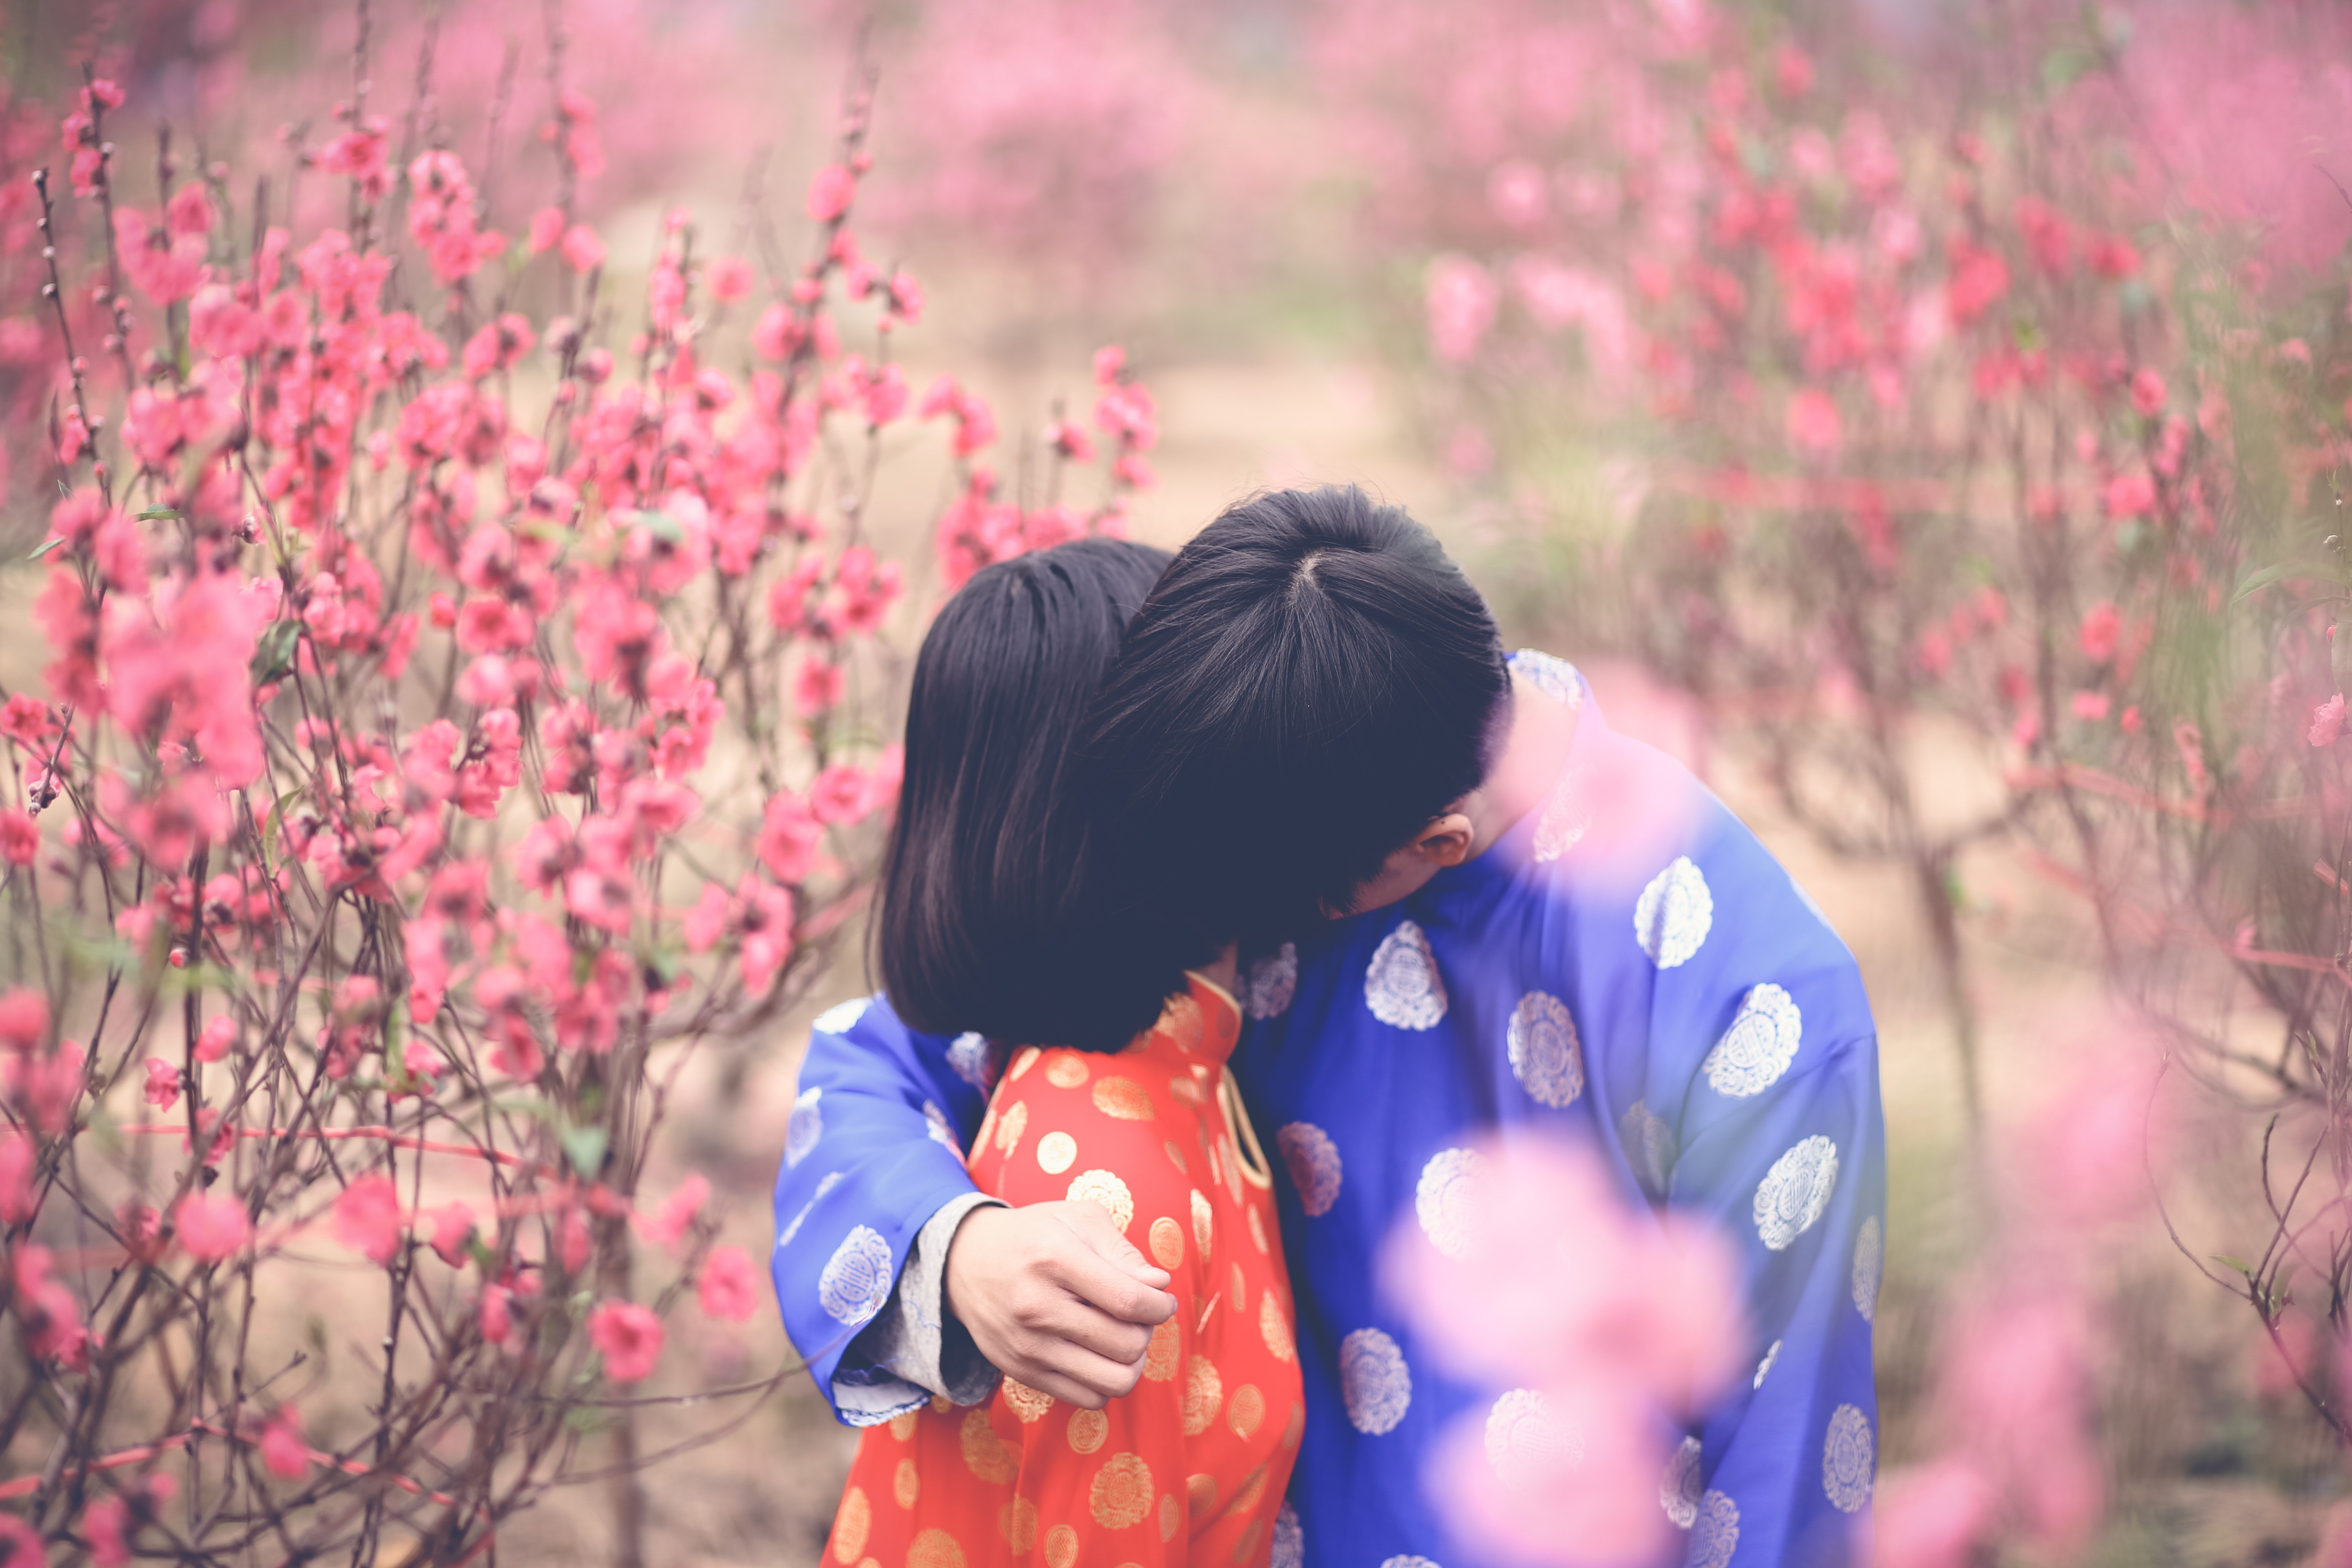 Man Hugging Girl in Orange Clothes, Blurred background, Outdoors, Young, Woman, HQ Photo